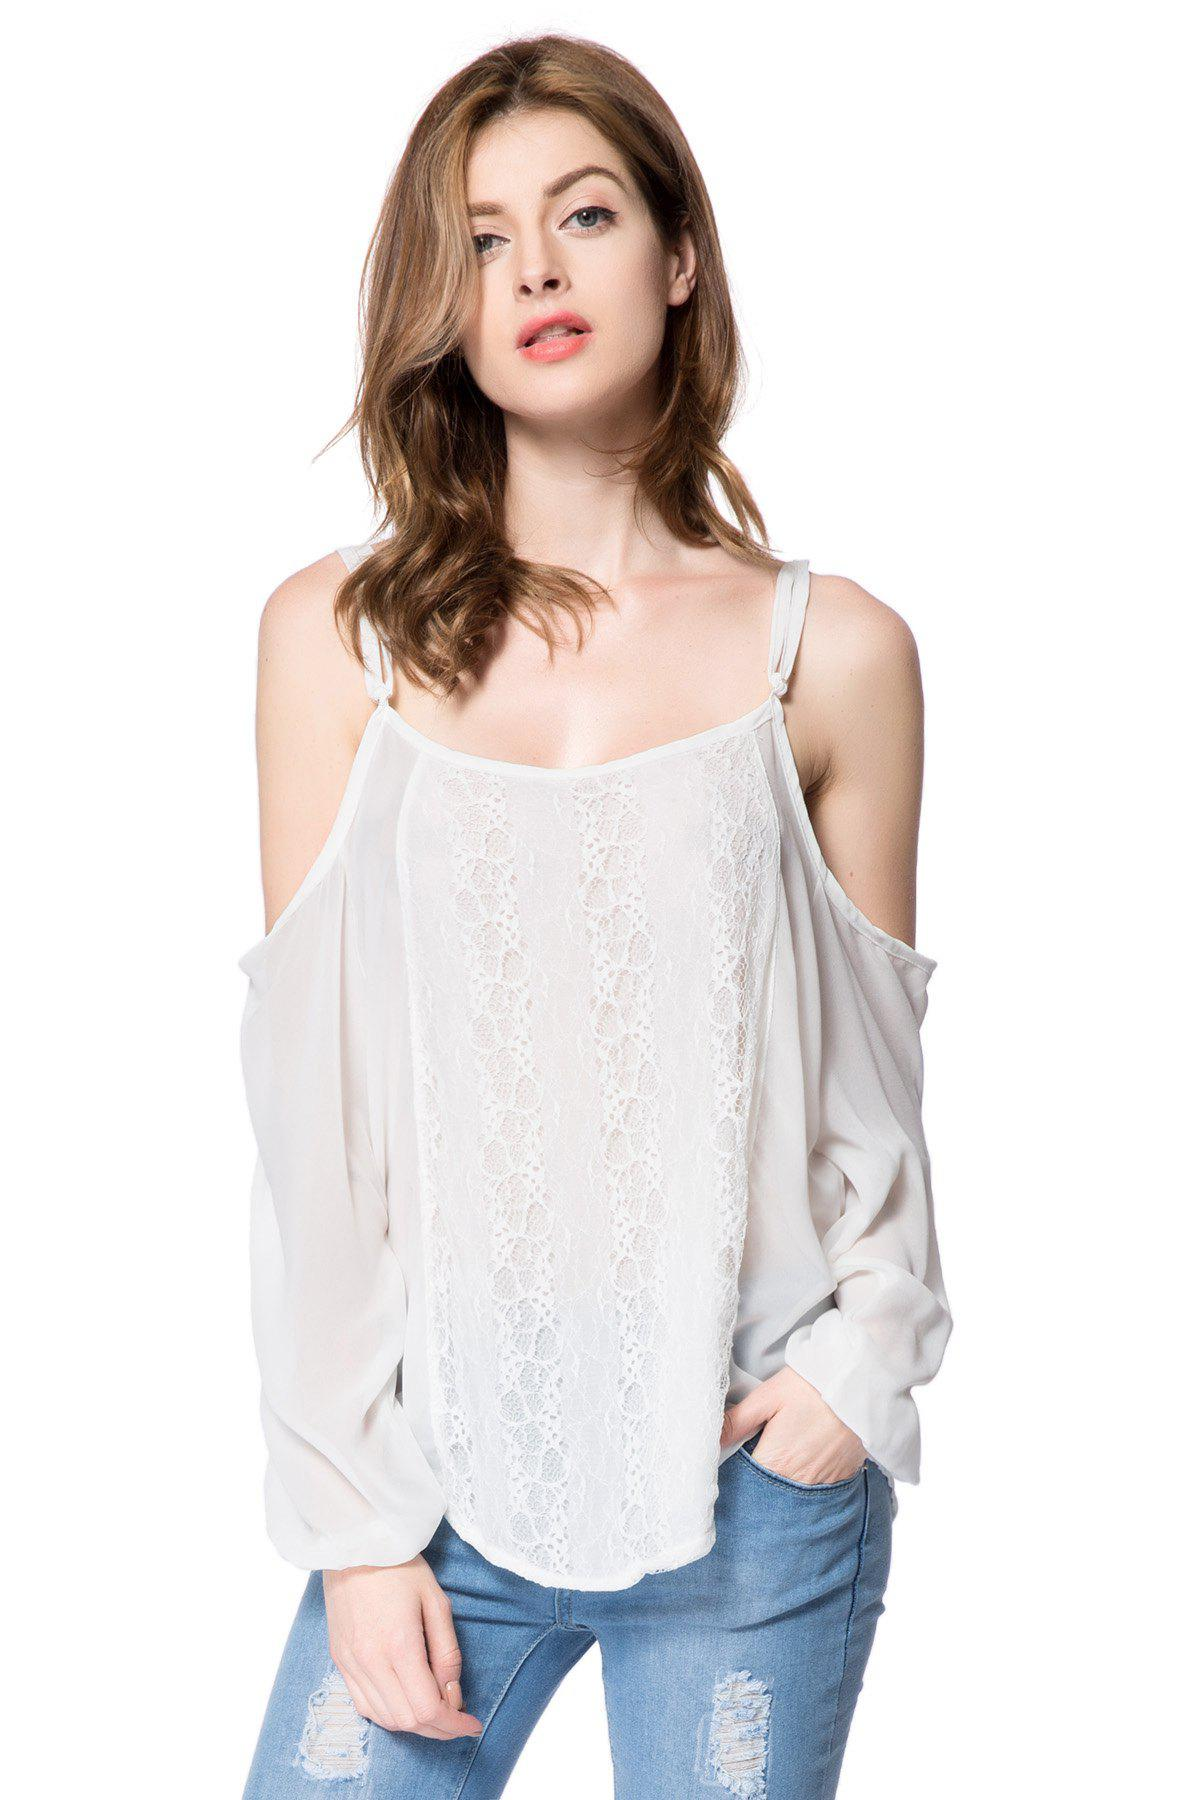 Spaghetti Strap Long Sleeve Lace Blouse For Women - WHITE L